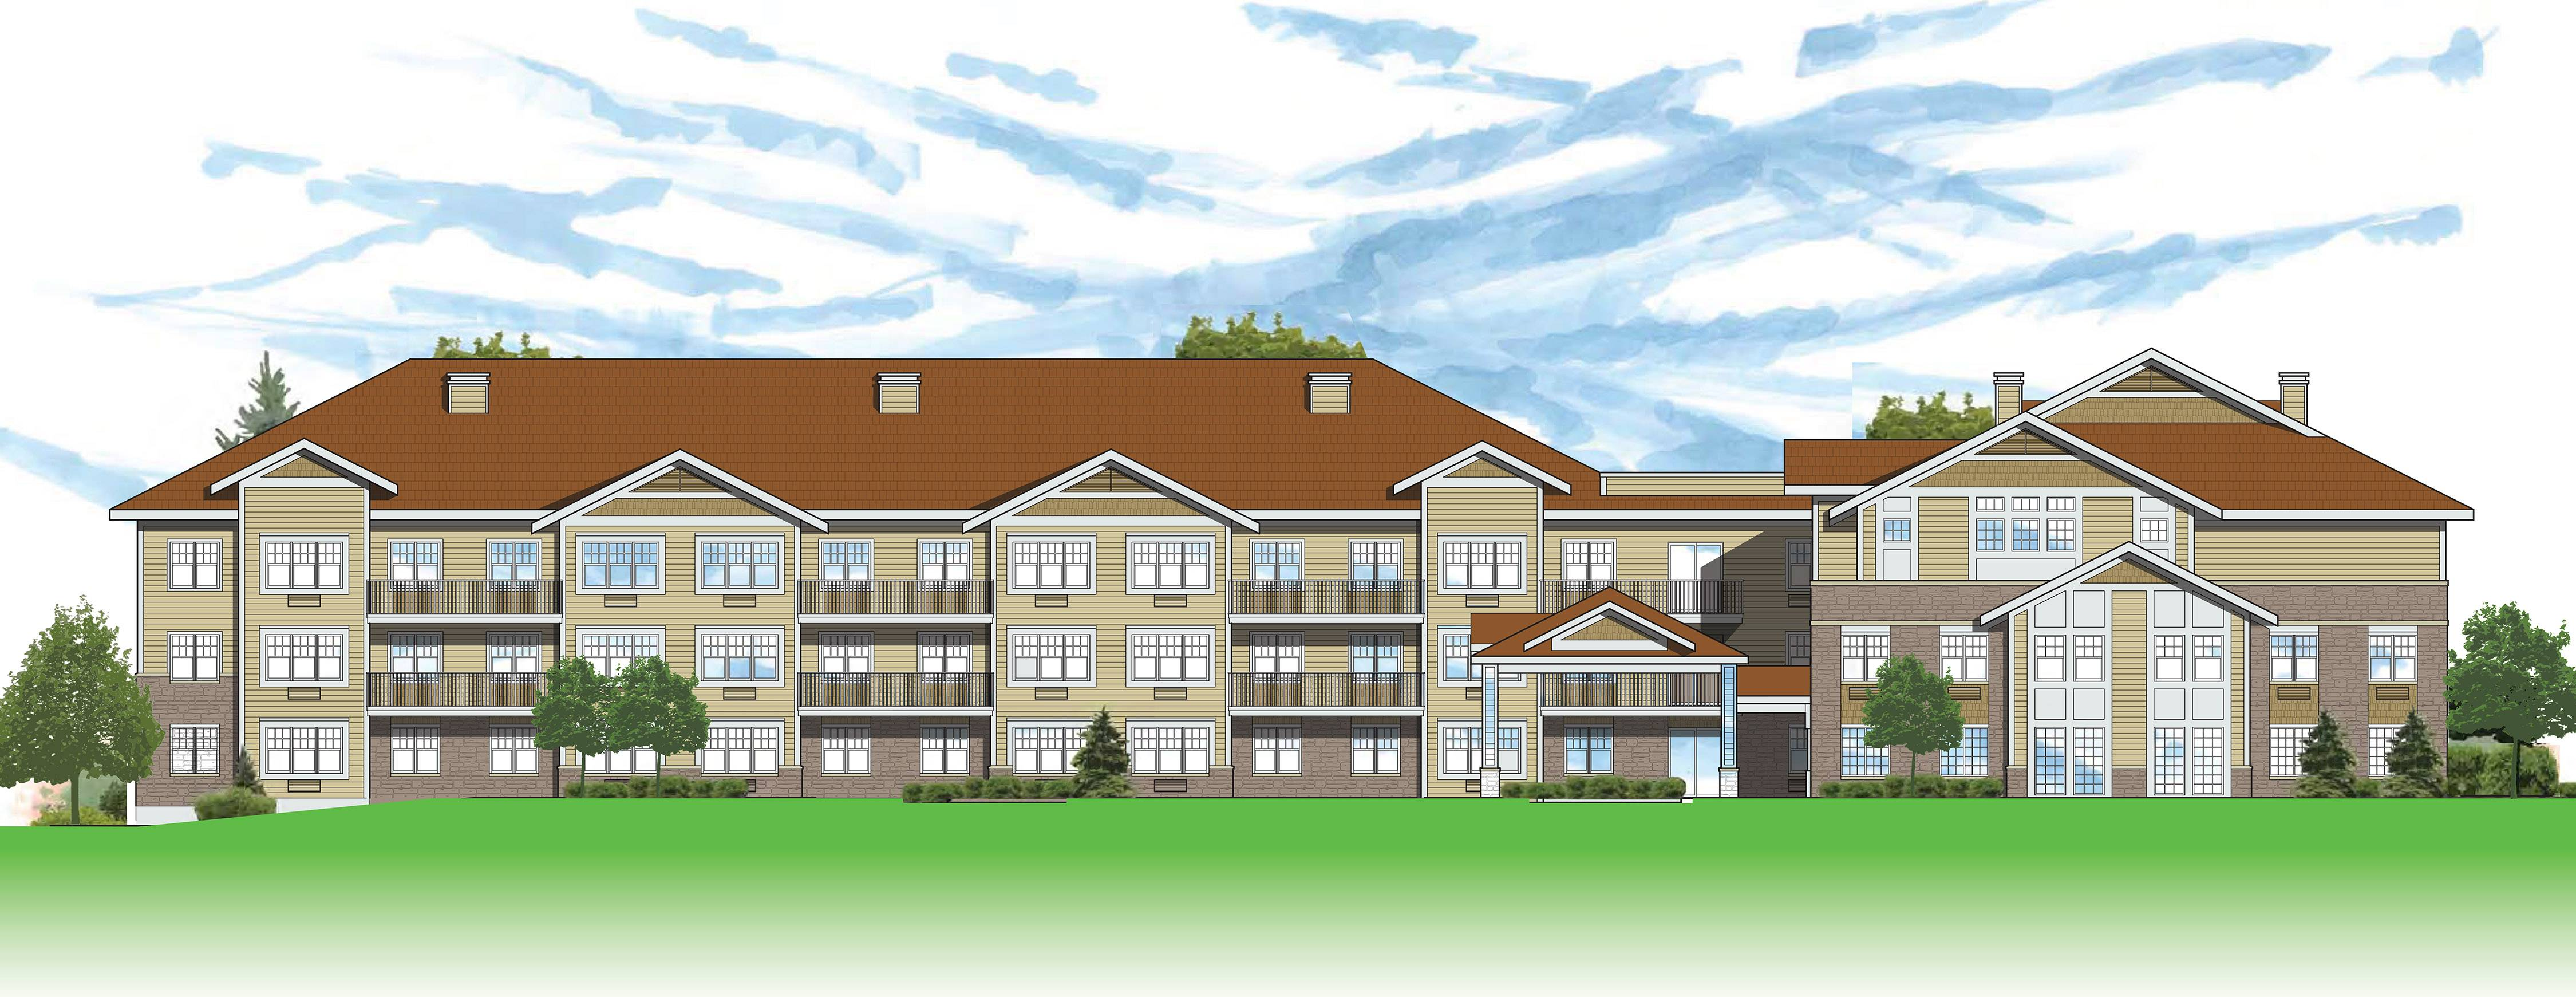 Algonquin to consider independent senior housing project